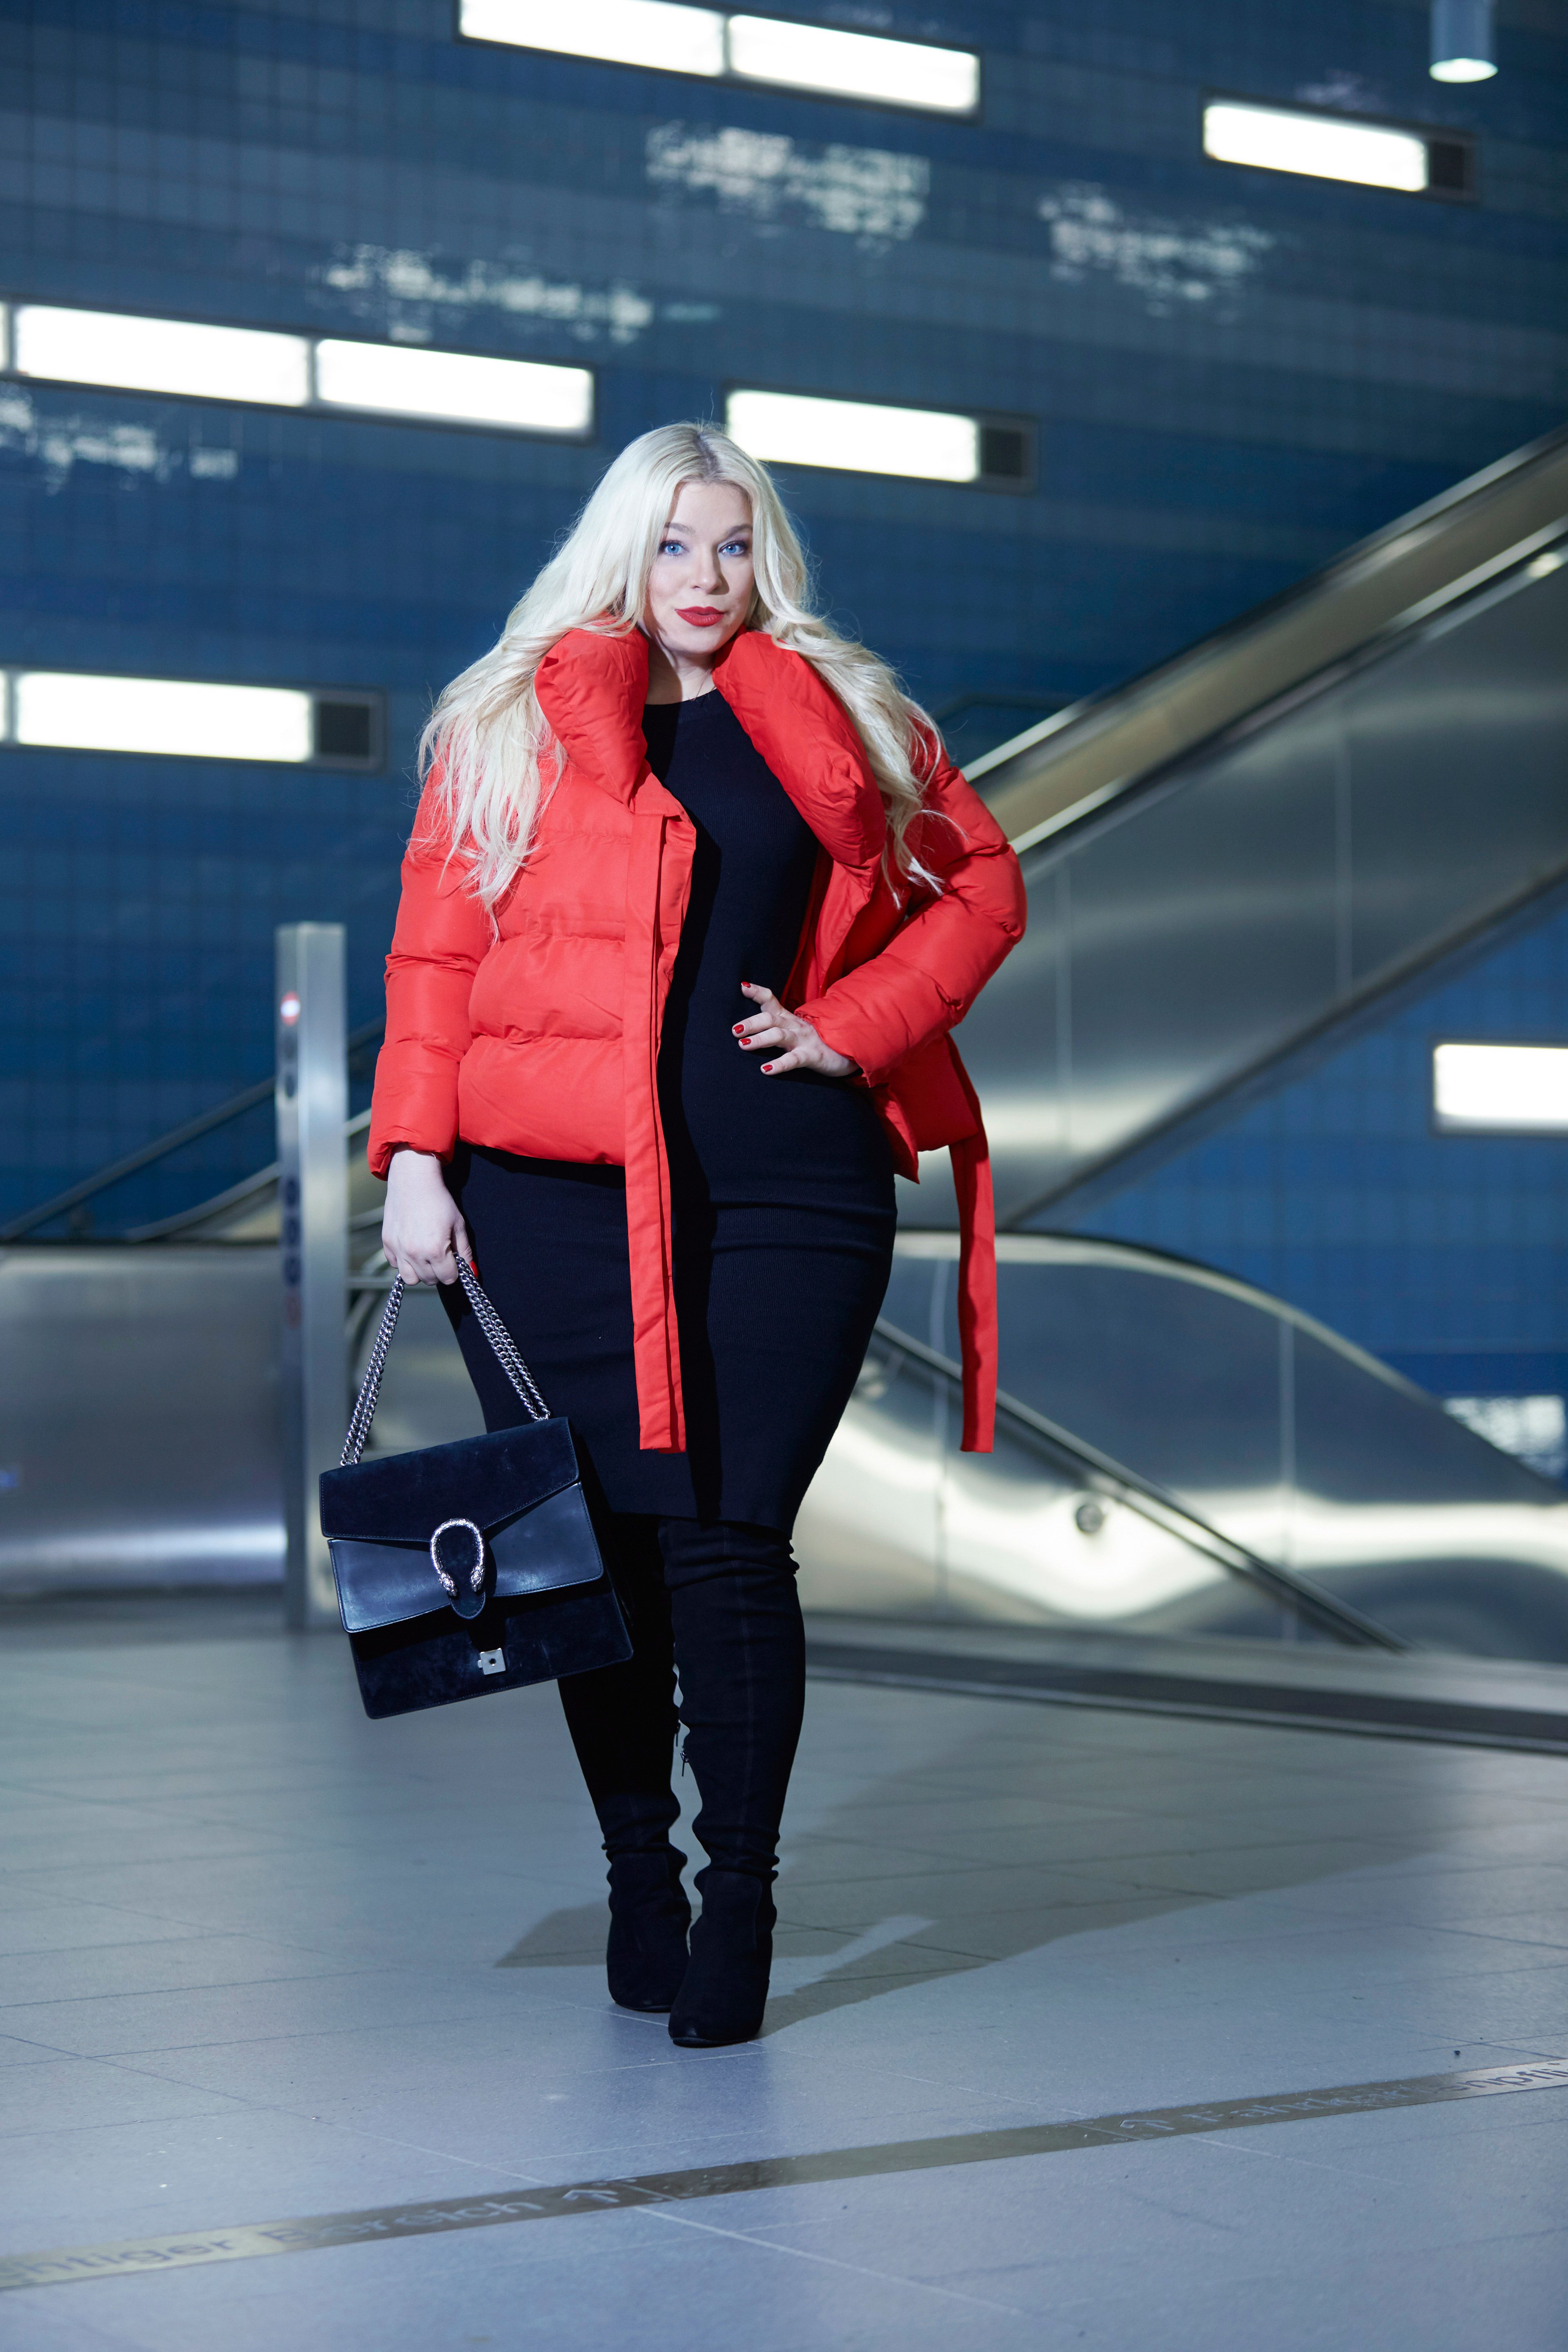 a5700c5d6 Trend-Baramoter Plus-Size : Puffer-Jackets & Statementsleeves ...